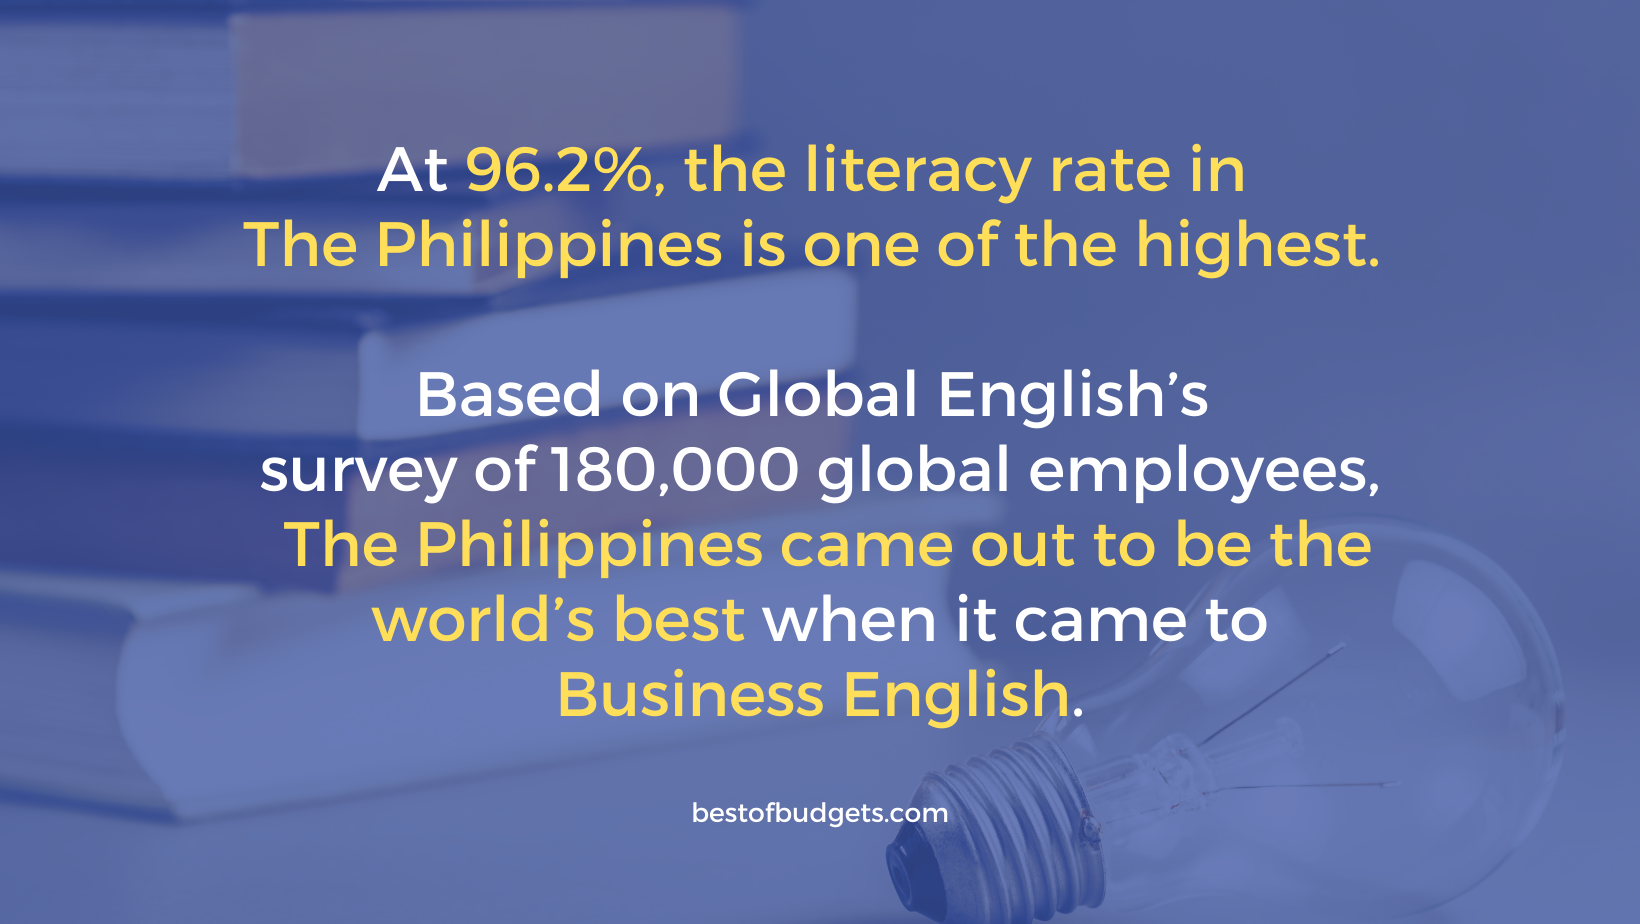 At 96.2%, the literacy rate in the Philippines is one of the highest. Based on Global English's survey of 180,000 global employees, the Philippines came out to be the world's best when it came to Business English.